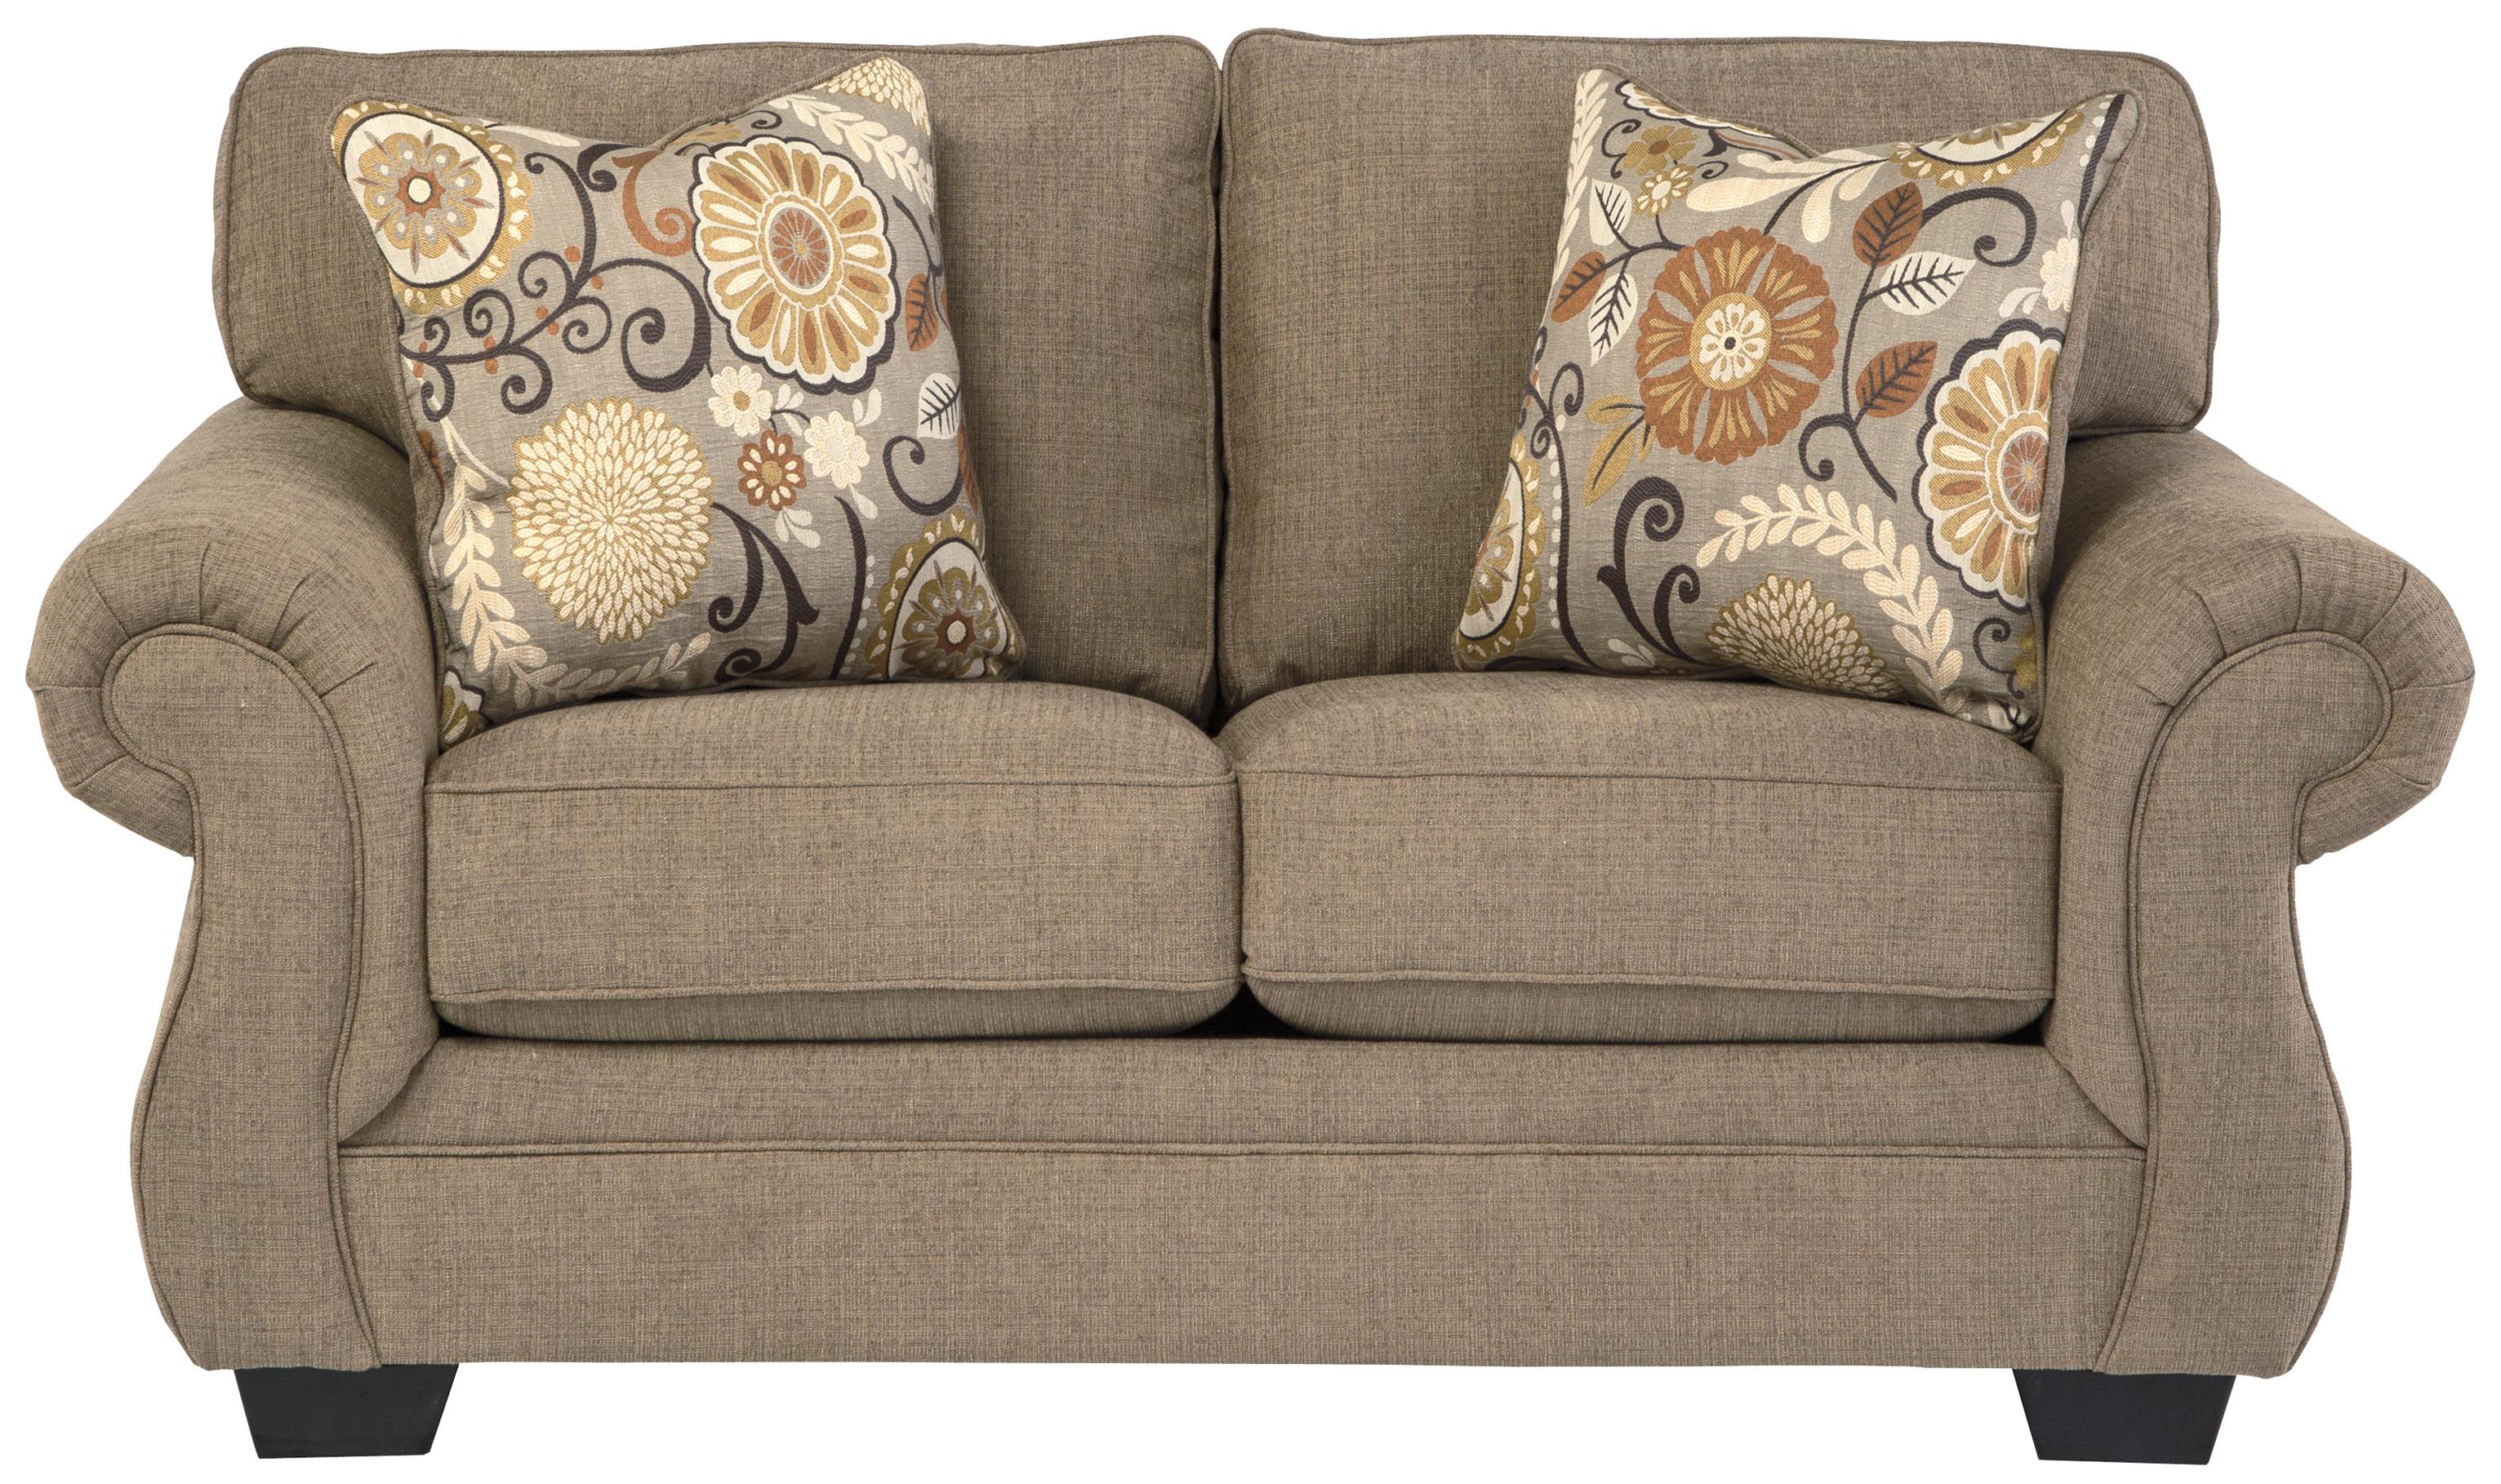 Benchcraft Tailya Loveseat - Item Number: 4770035